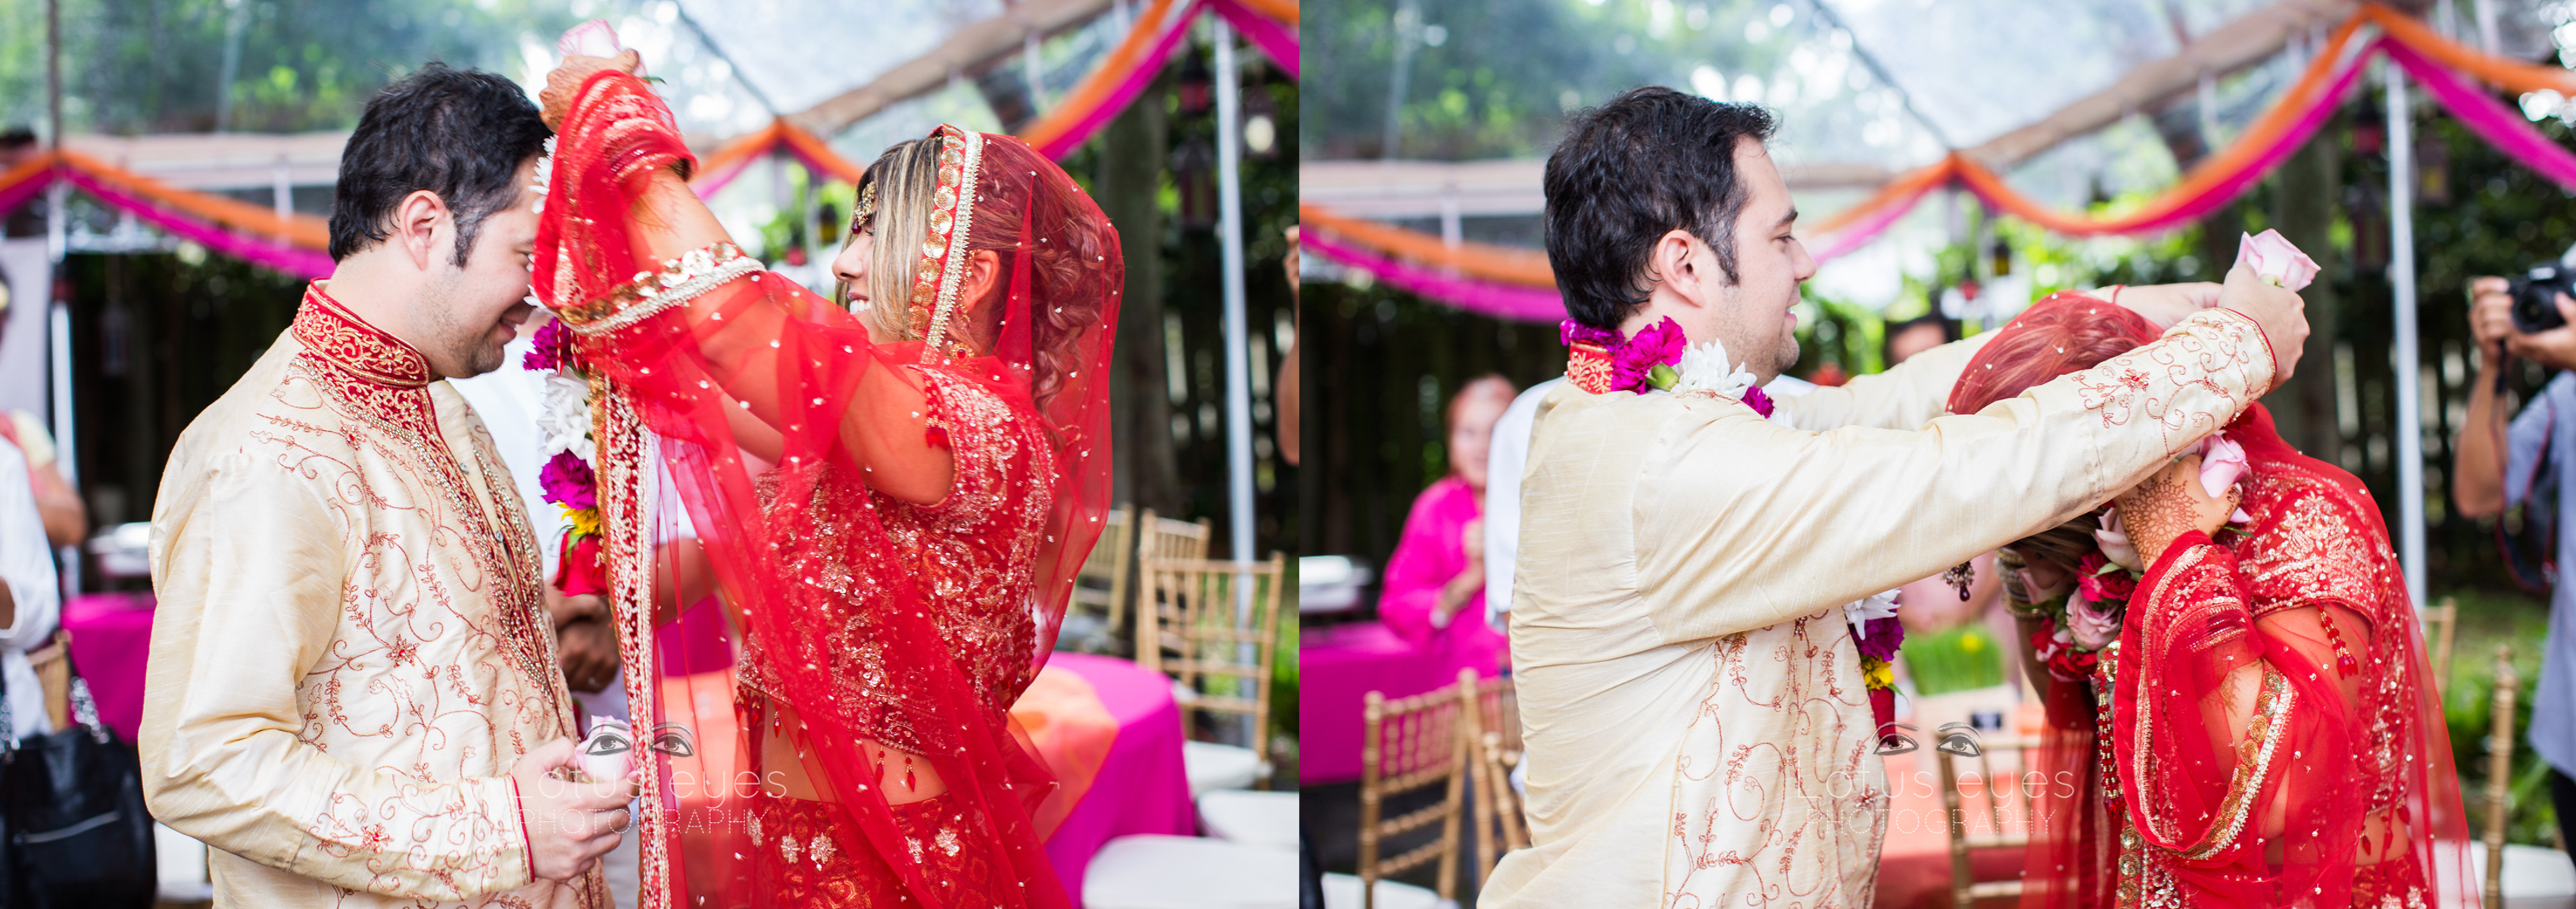 indian vedic wedding in Miami